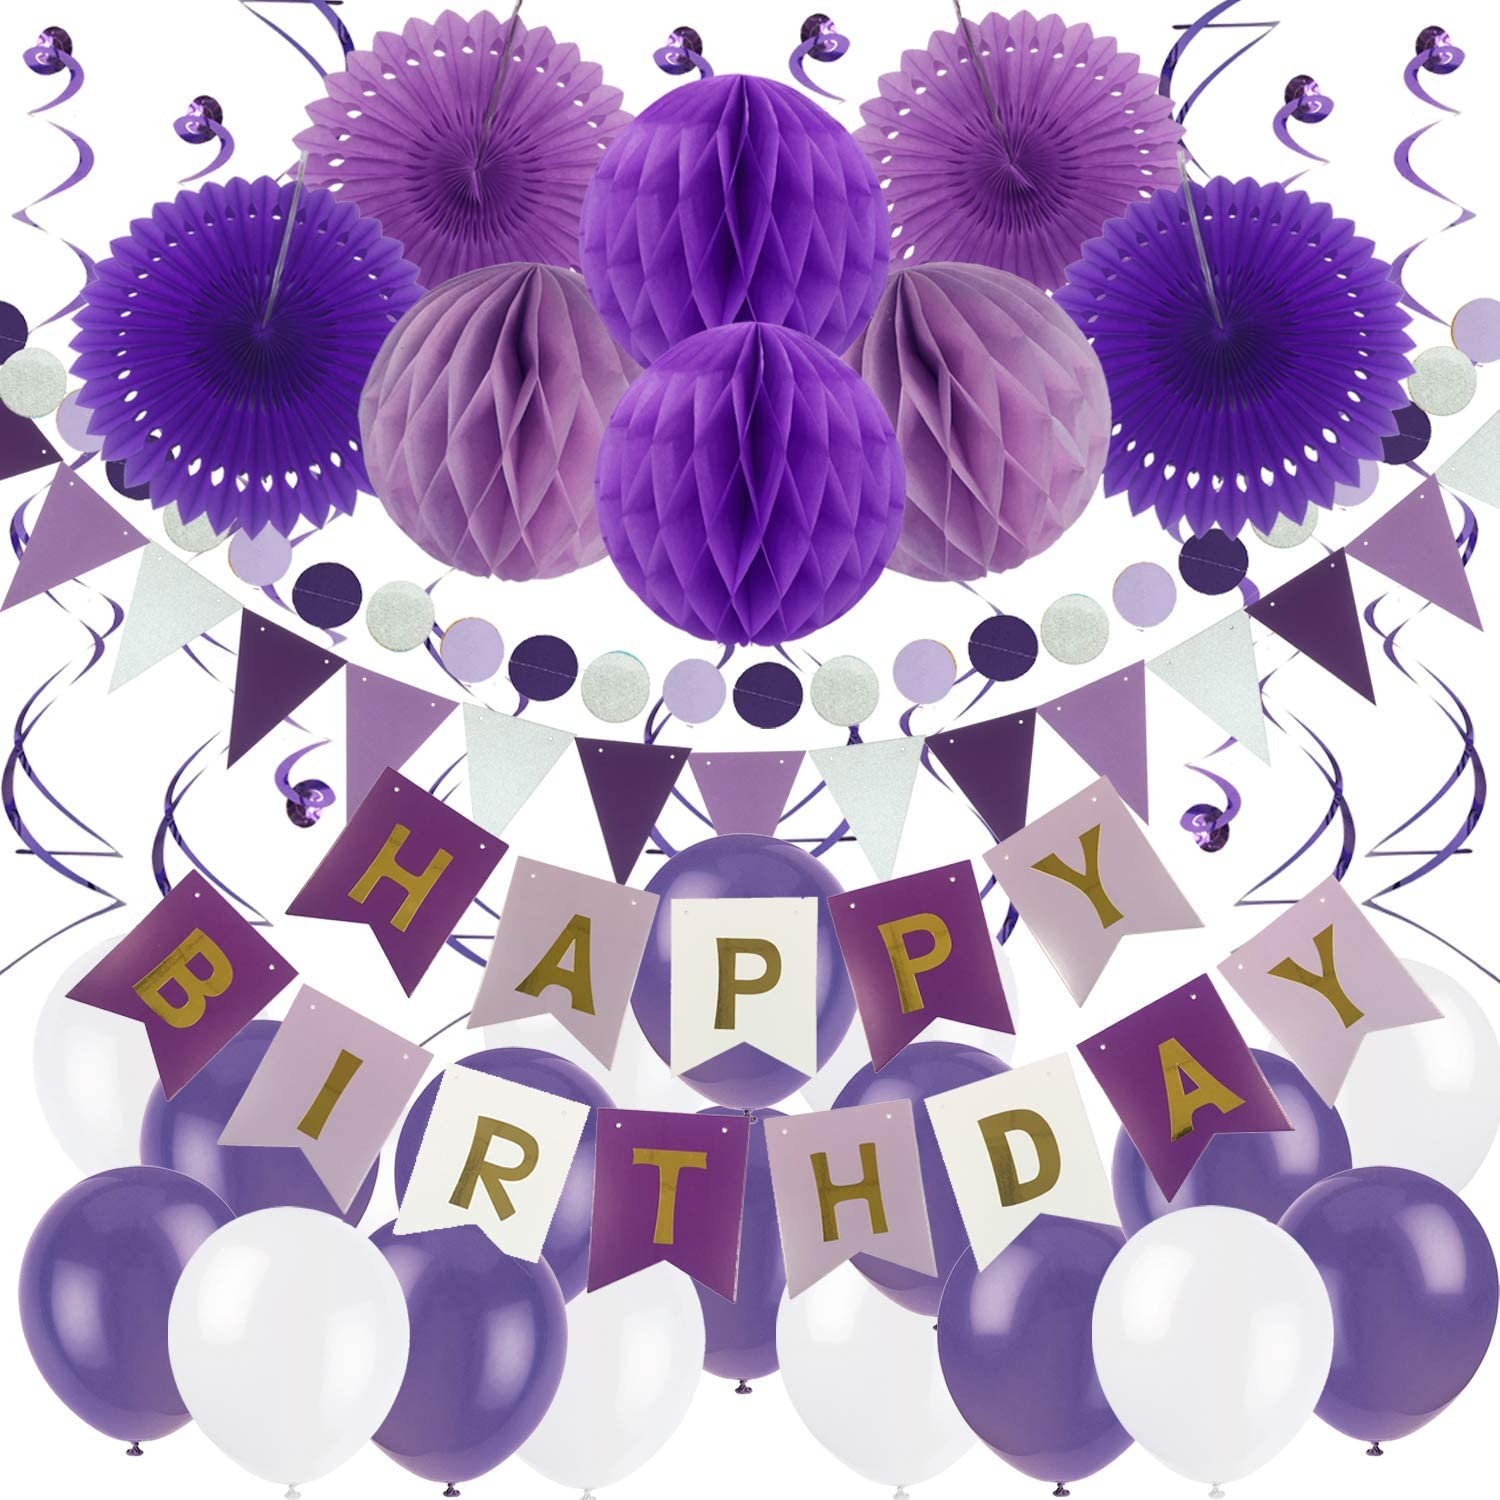 ZERODECO Birthday Party Decoration, Happy Birthday Banner with Paper Fans, Honeycomb Balls, Triangular Pennants, Circle Paper Garland, Hanging Swirls and Balloons - Purple, Lavender and White